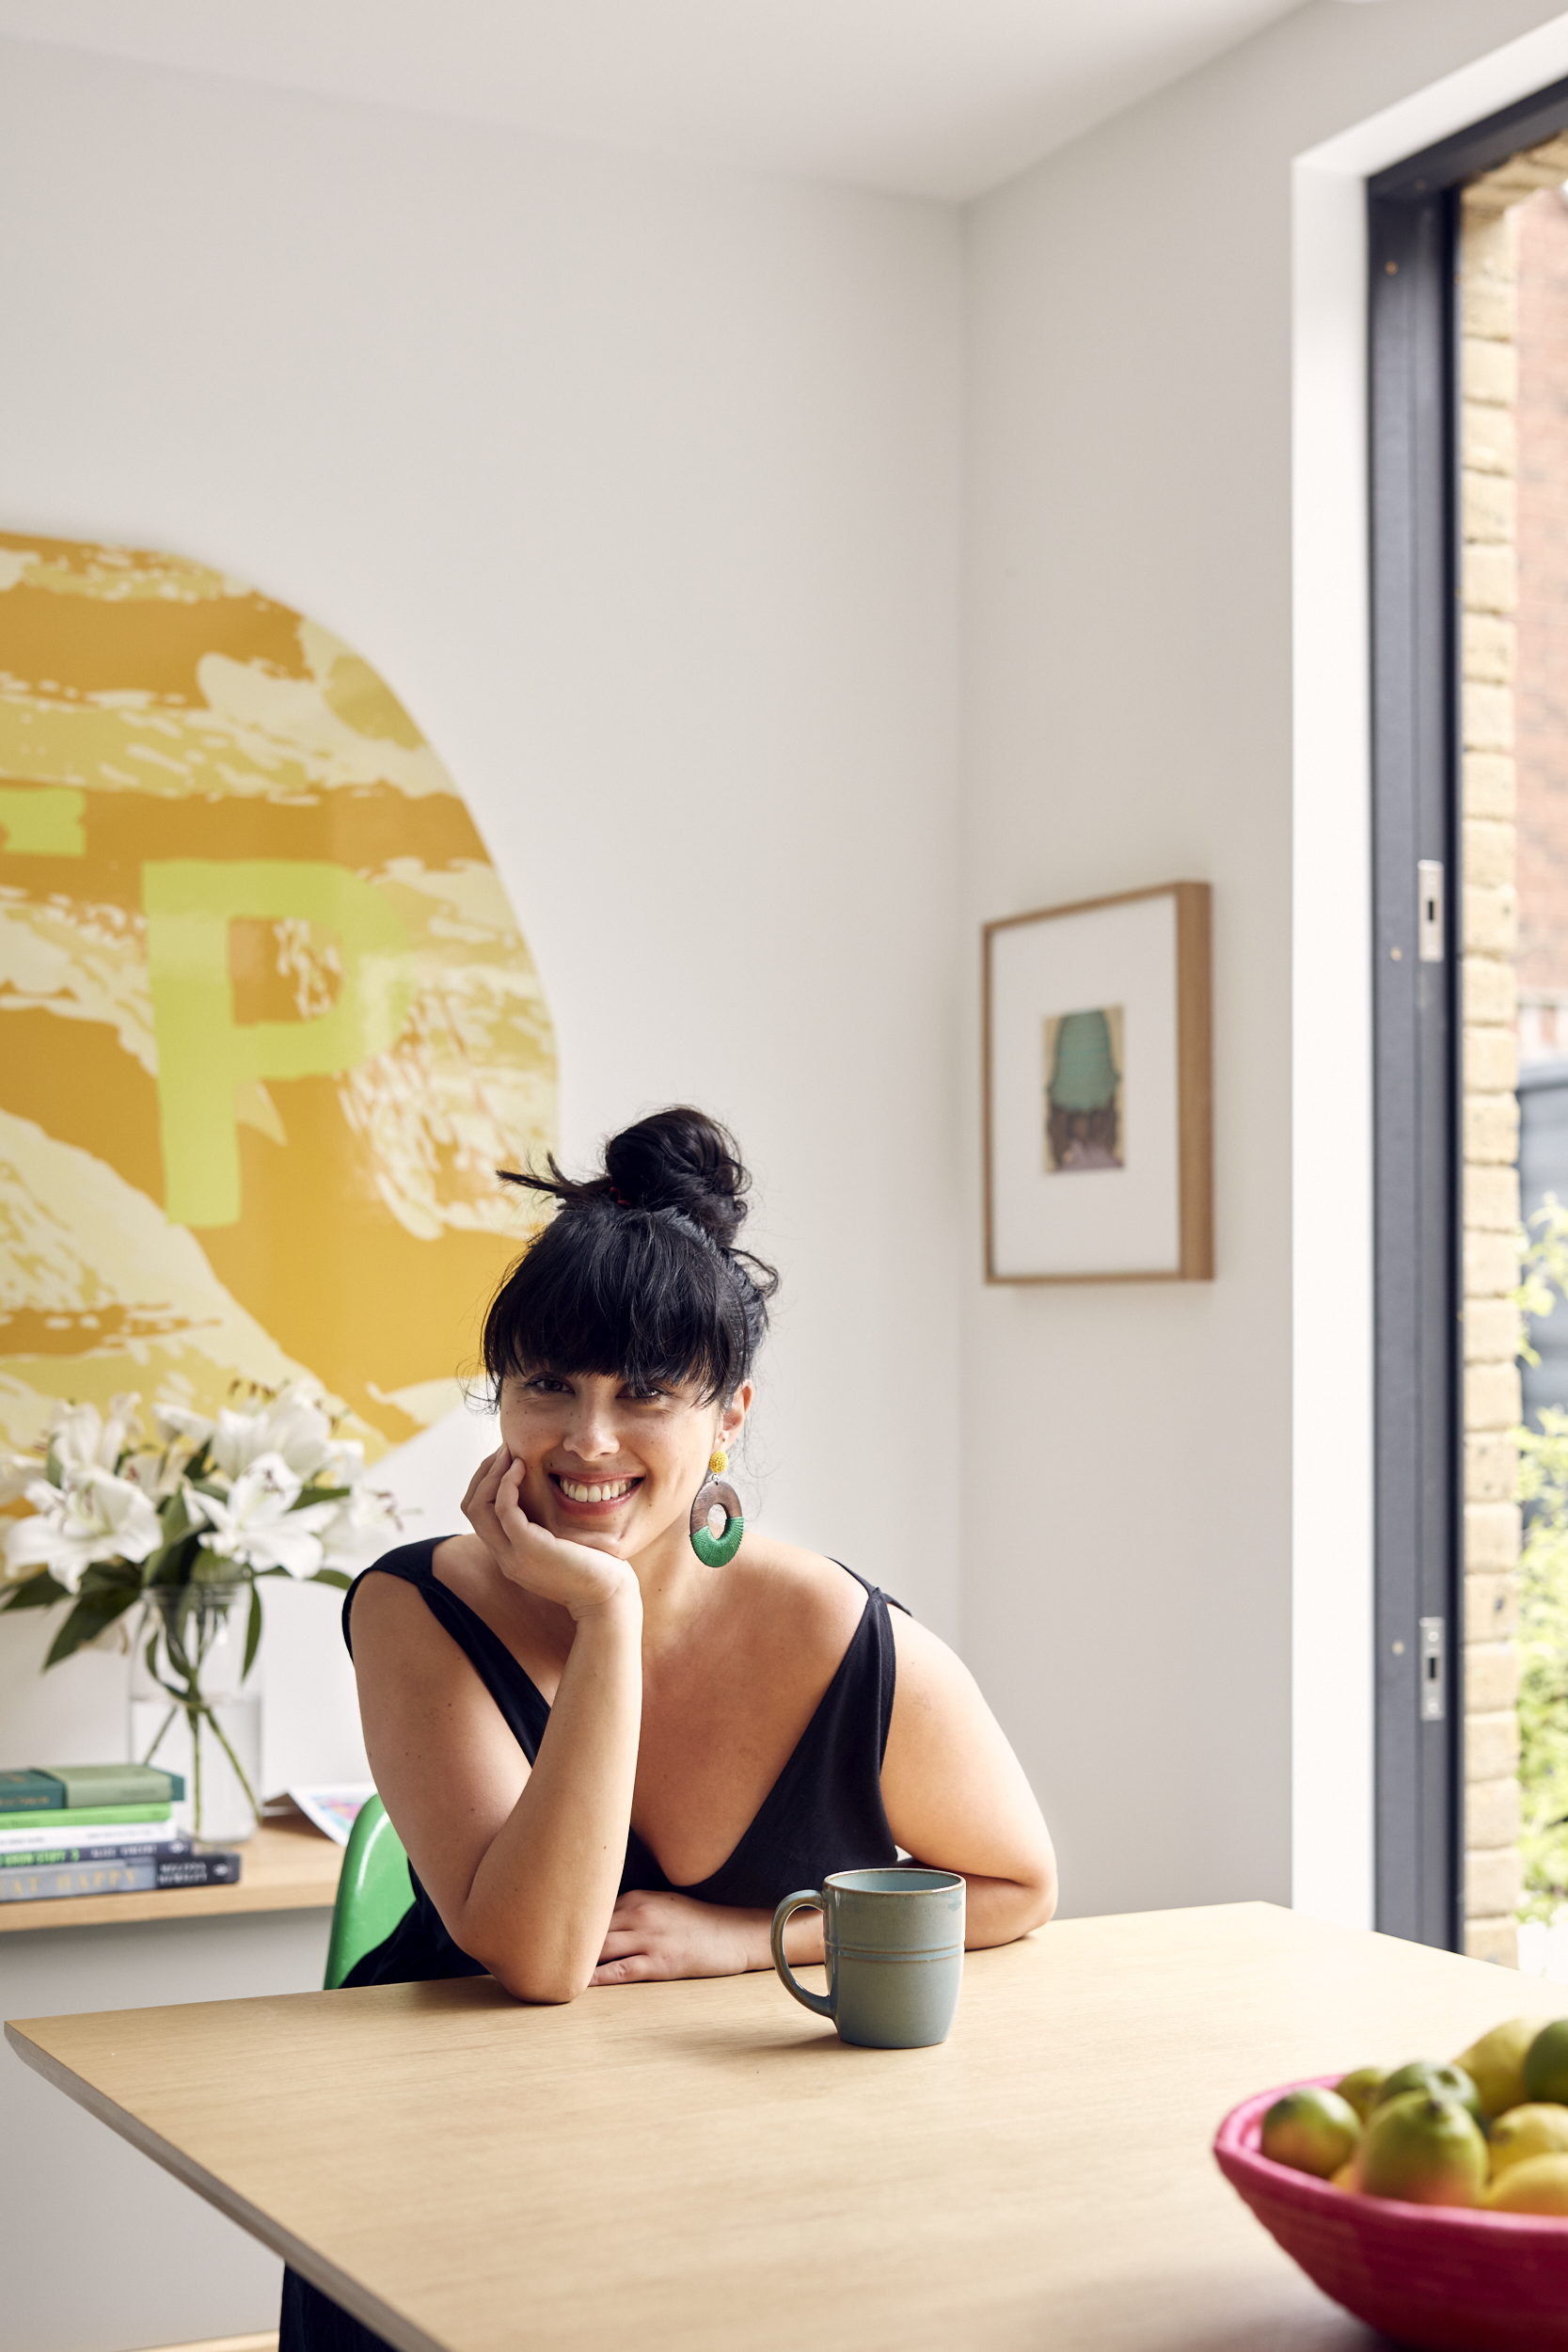 Soho Home - Melissa Hemsley02437.jpg